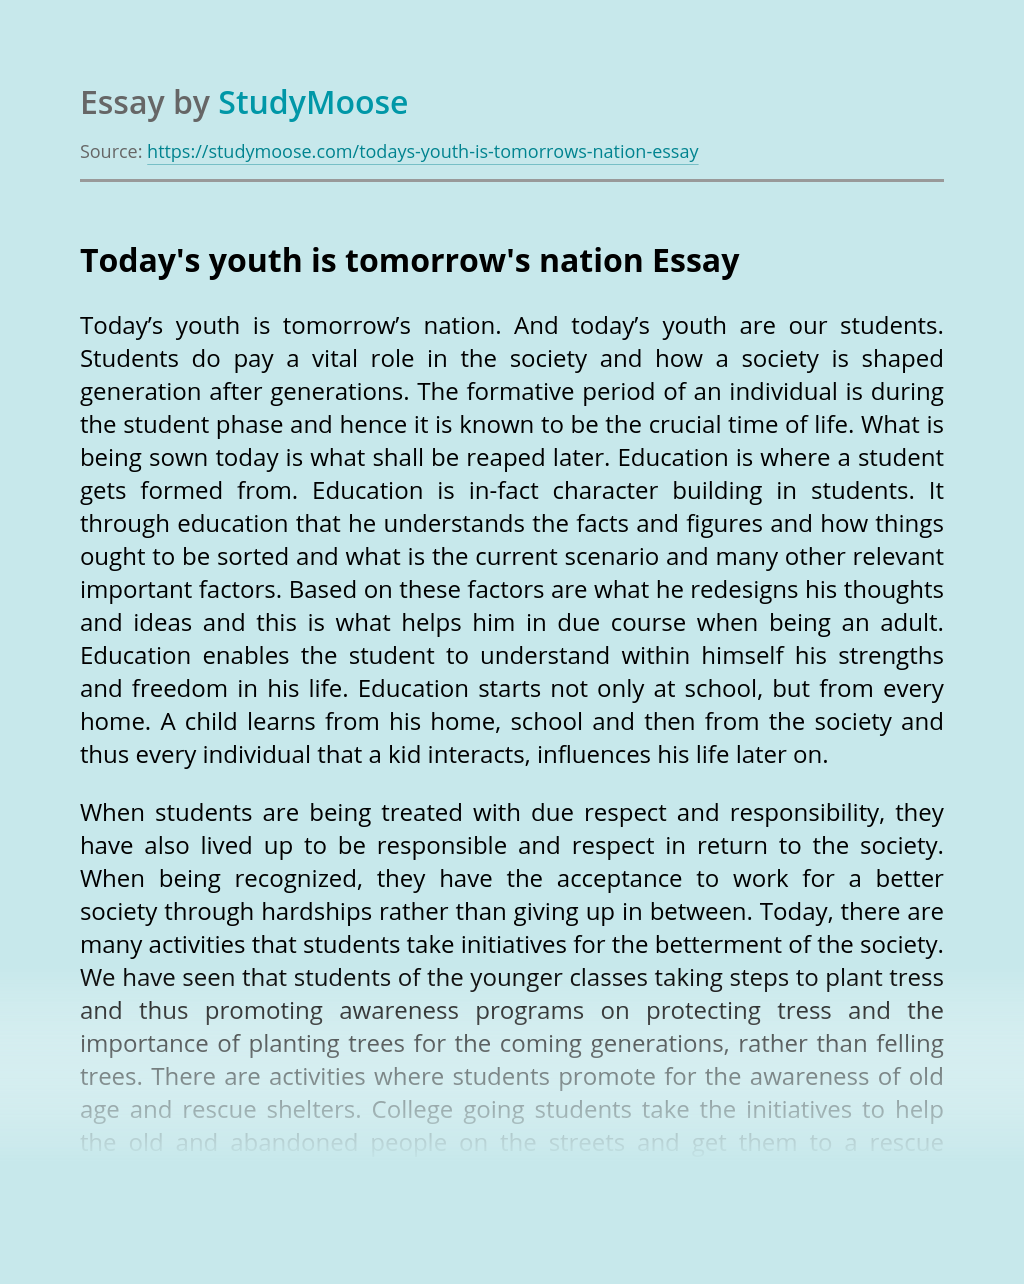 Today's youth is tomorrow's nation